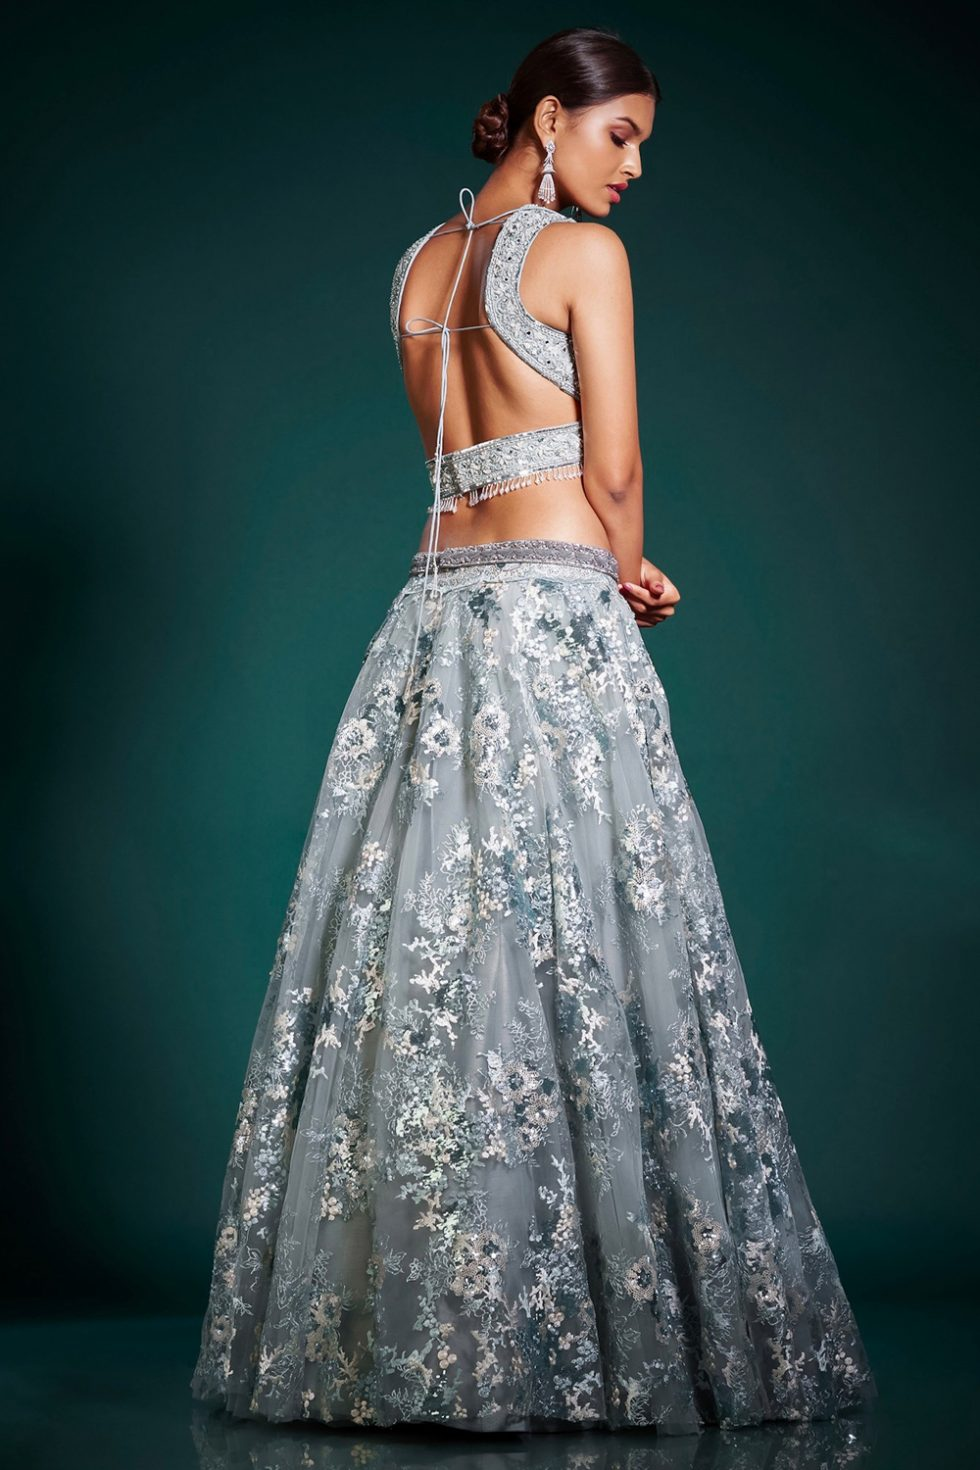 Steel grey lehenga set with a hand embroidered blouse and a lace sequin work skirt paired with a matching dupatta and tassels.